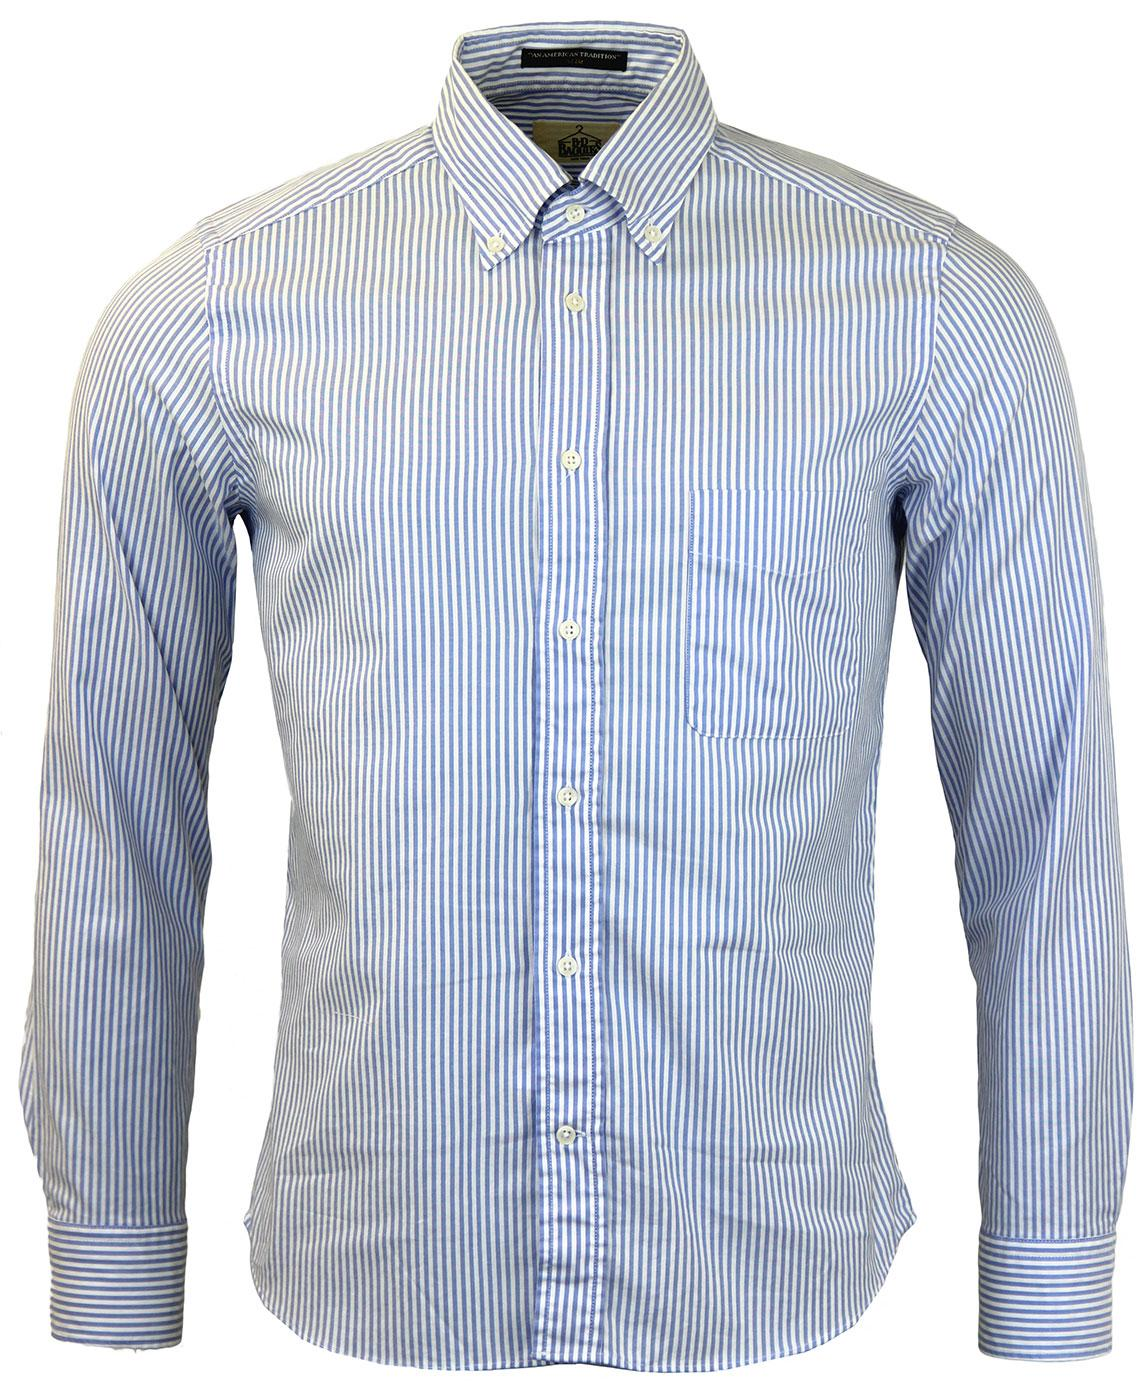 Dexter B D BAGGIES Slim Fit Bengal Stripe Shirt